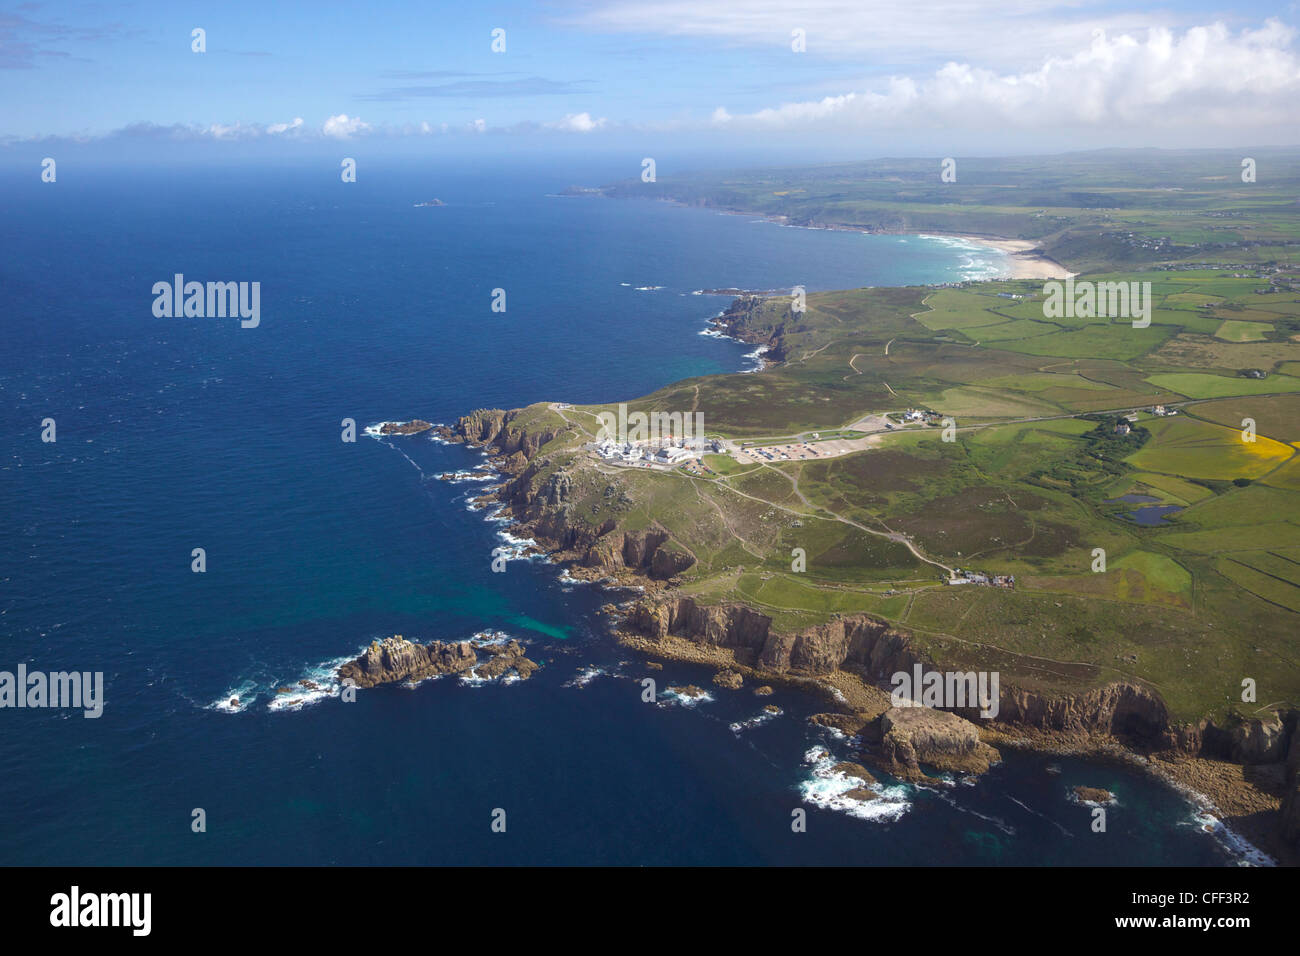 Aerial photo of Lands End Peninsula, West Penwith, Cornwall, England, United Kingdom, Europe Stock Photo